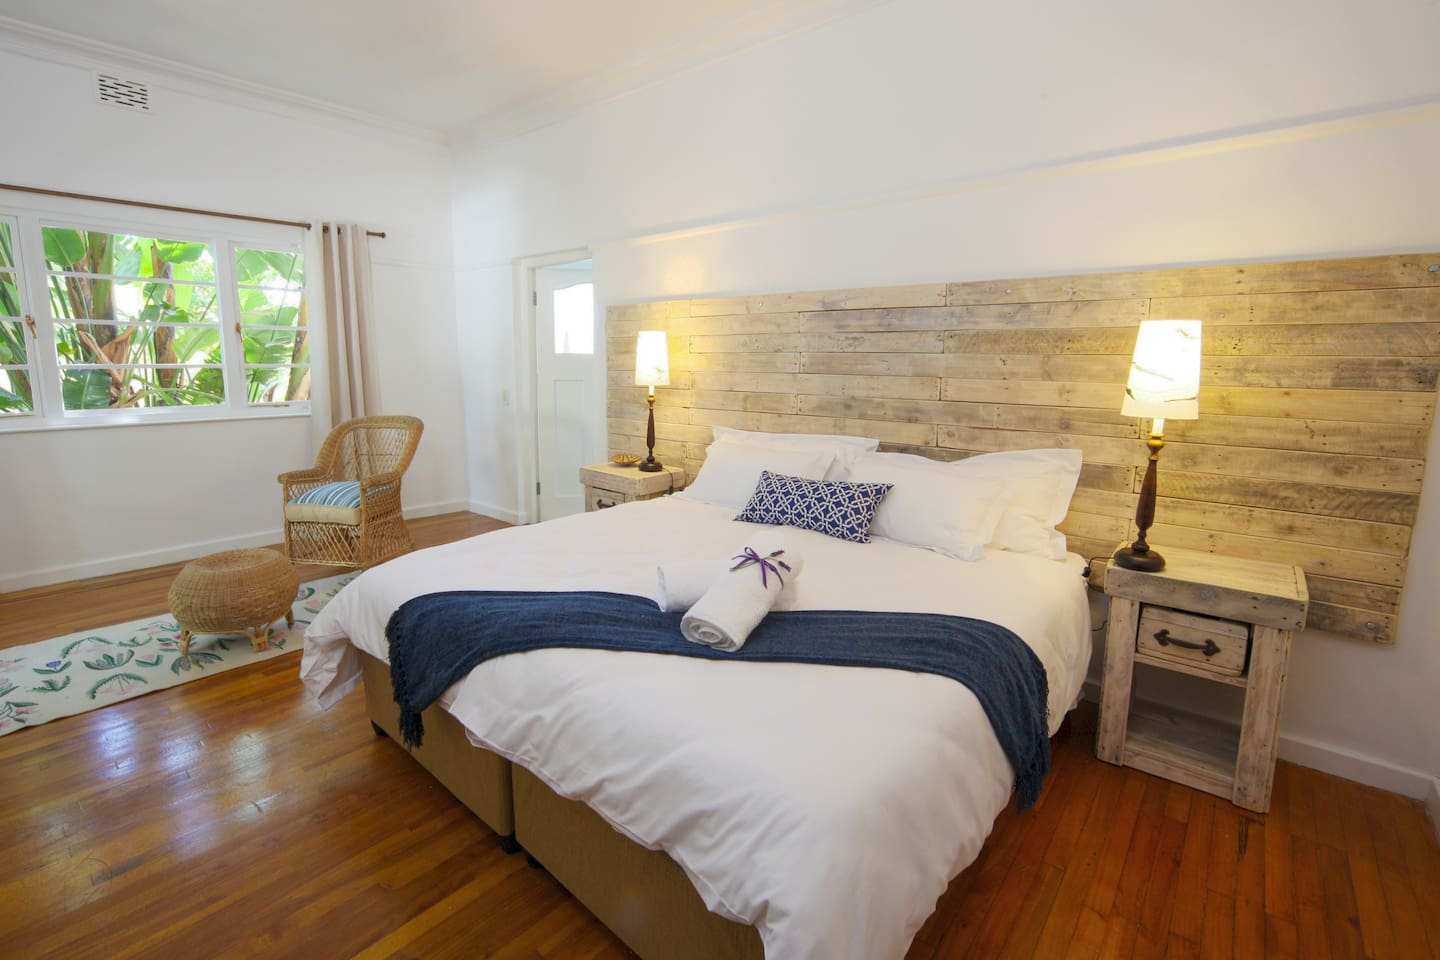 Lots of room and natural light. Comfortable King-size extra length bed.